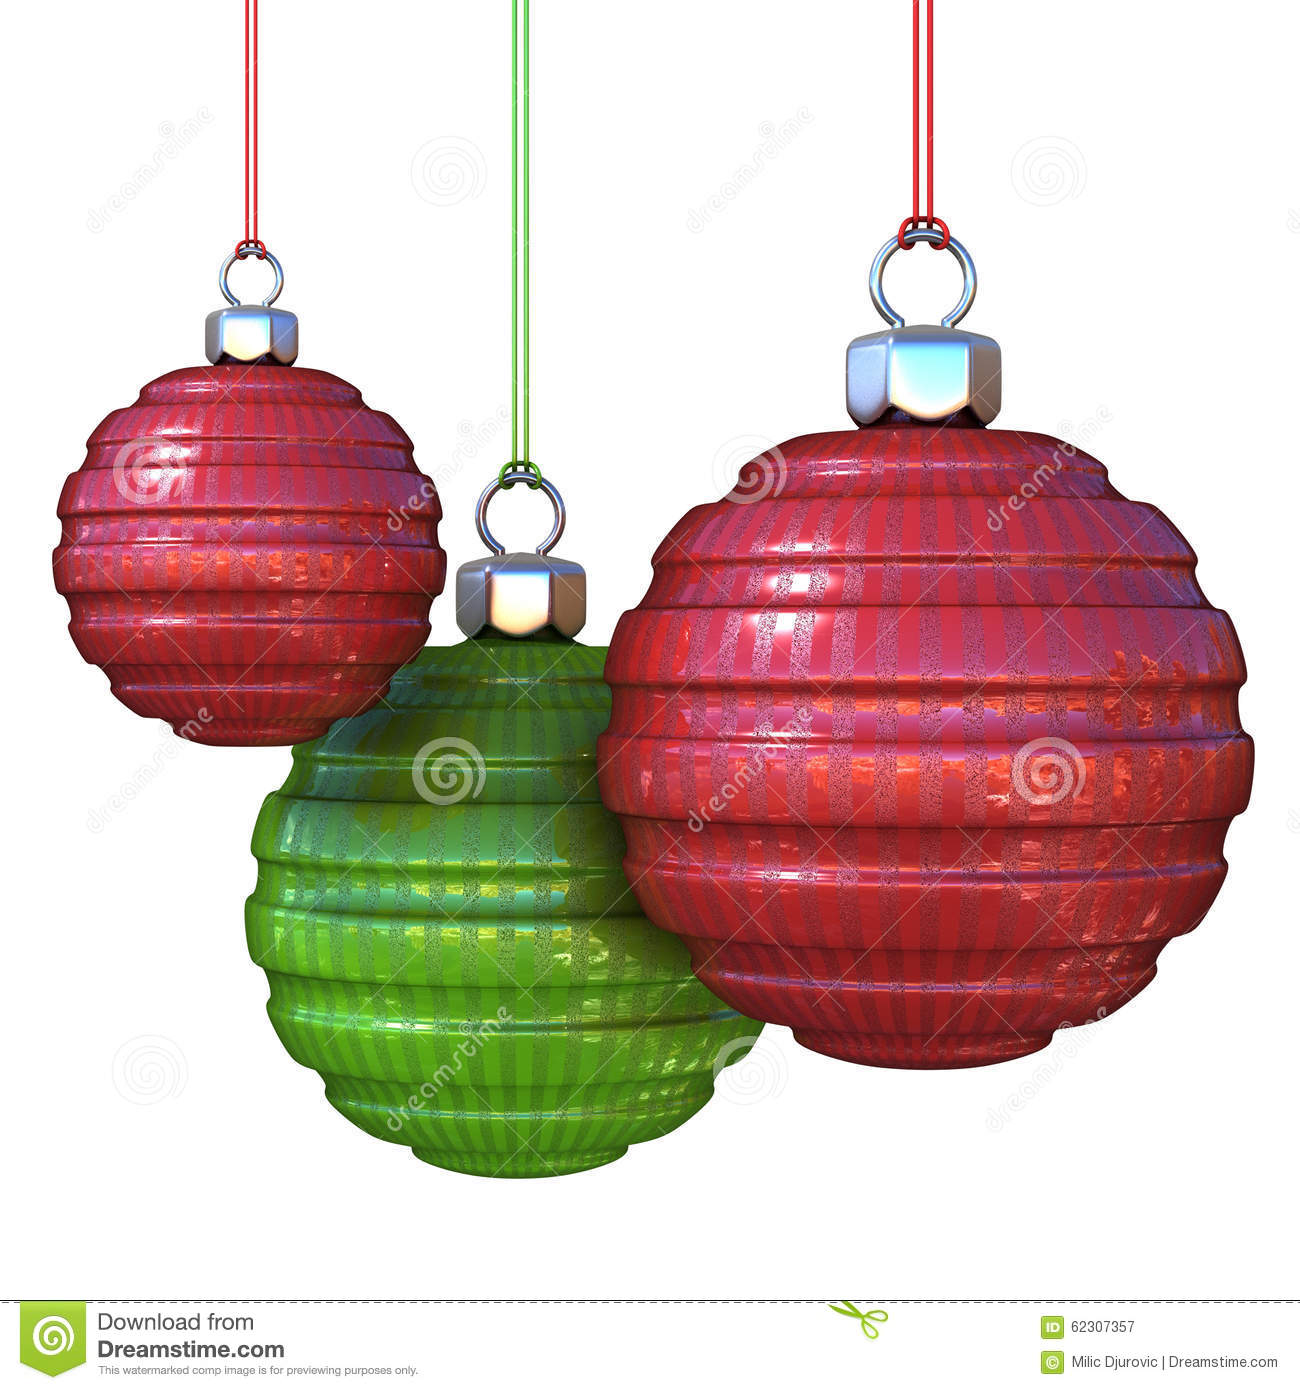 Red and green striped, hanging Christmas balls